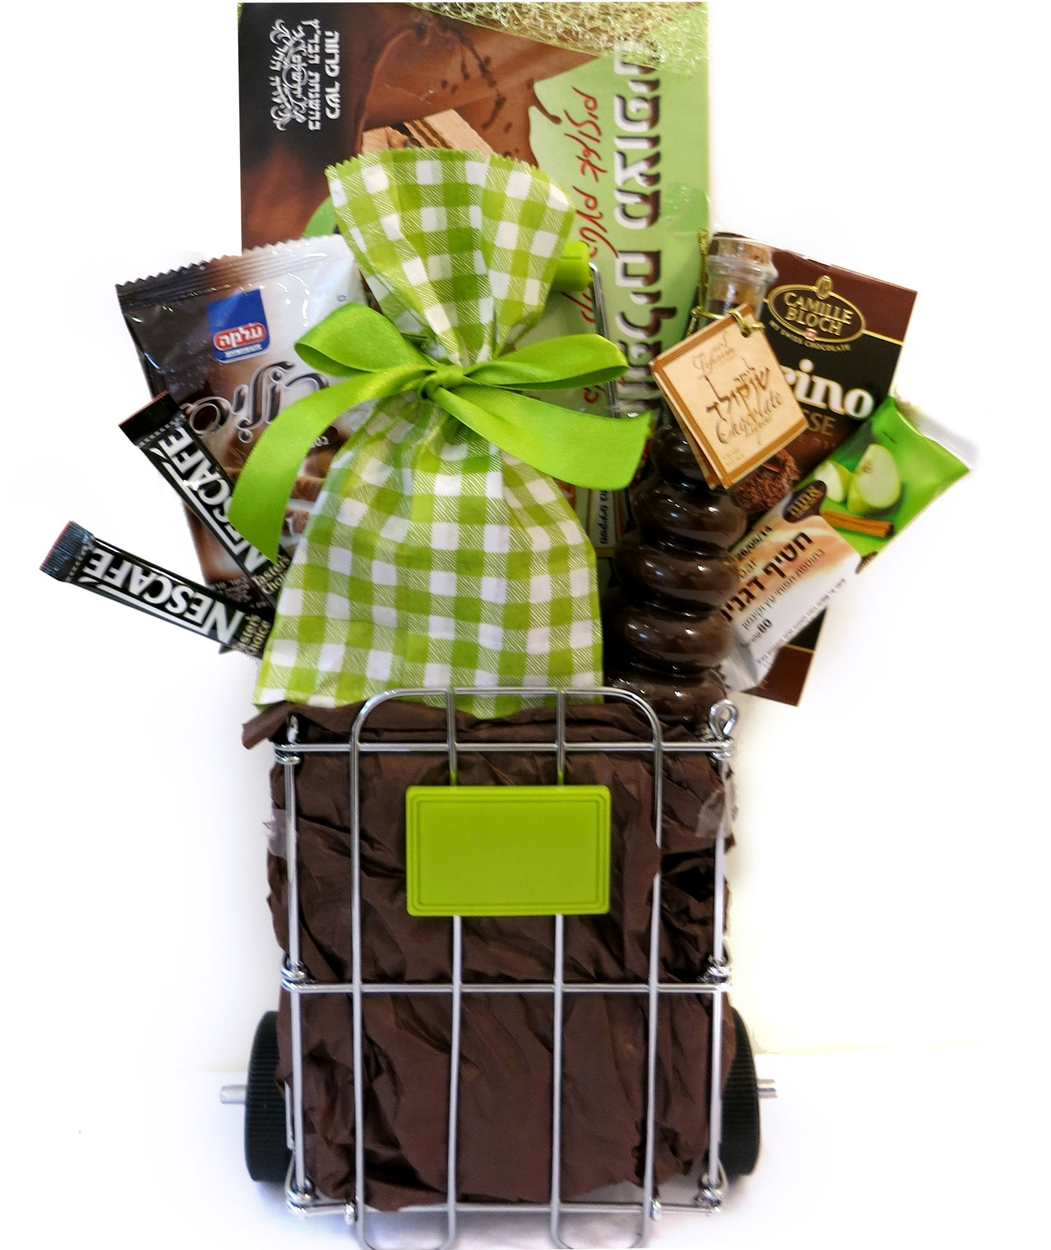 shopping cart attraction israel only purim baskets mishloach